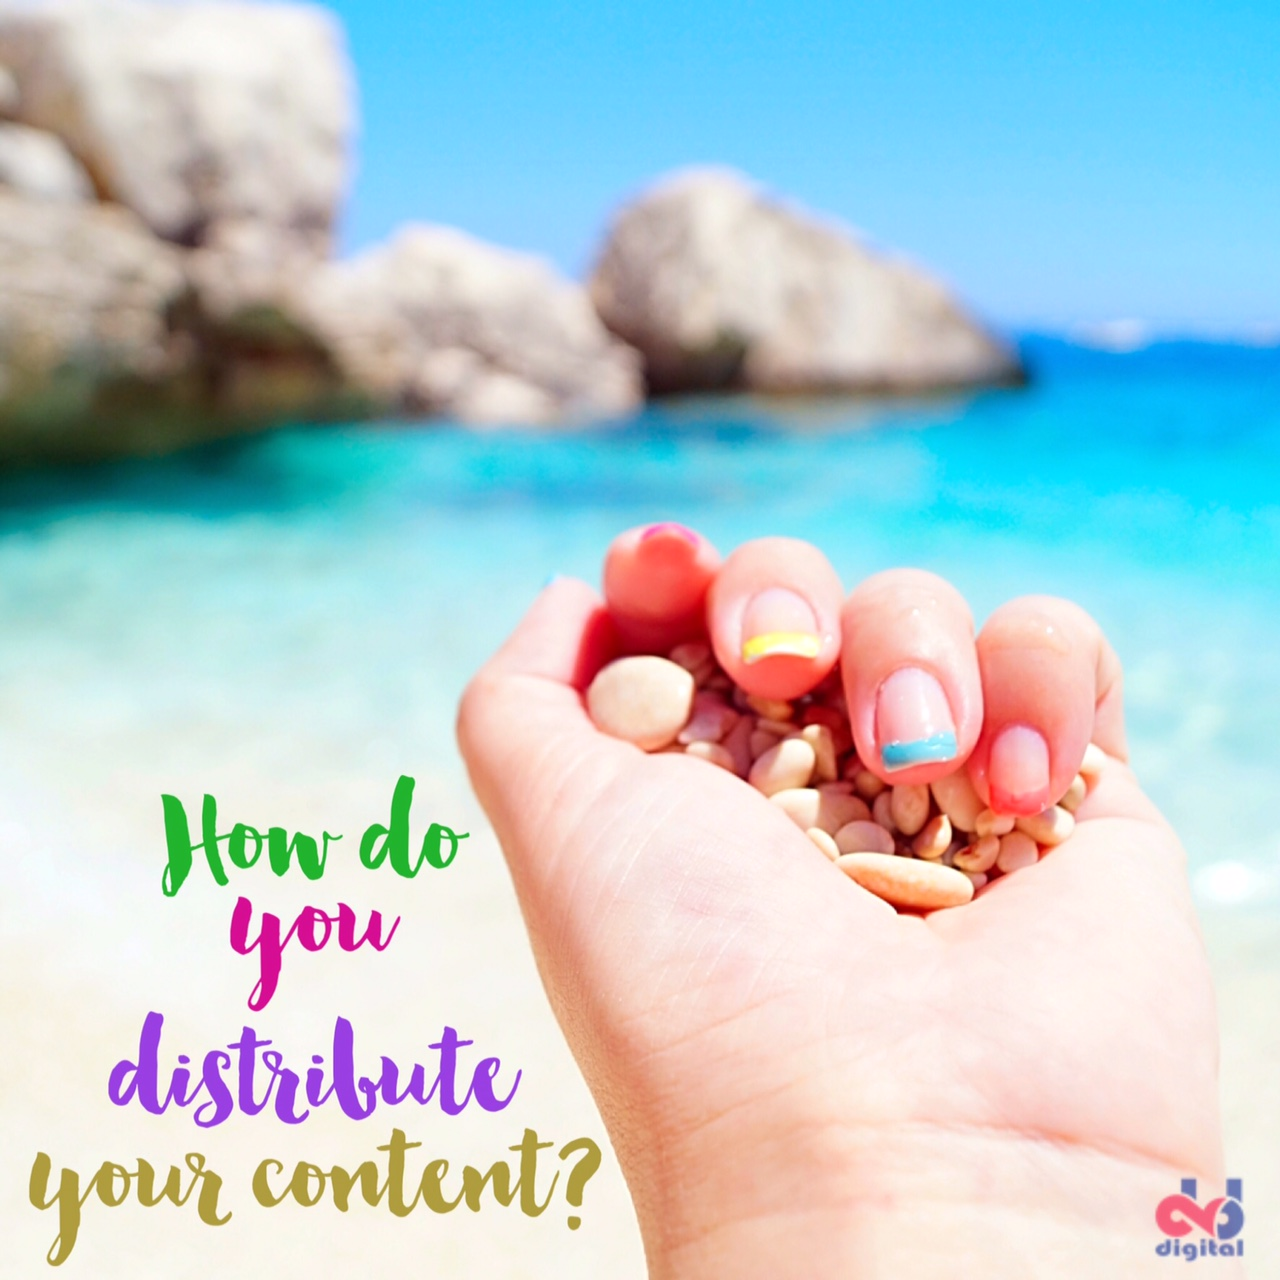 5 Tips for Better Content Distribution